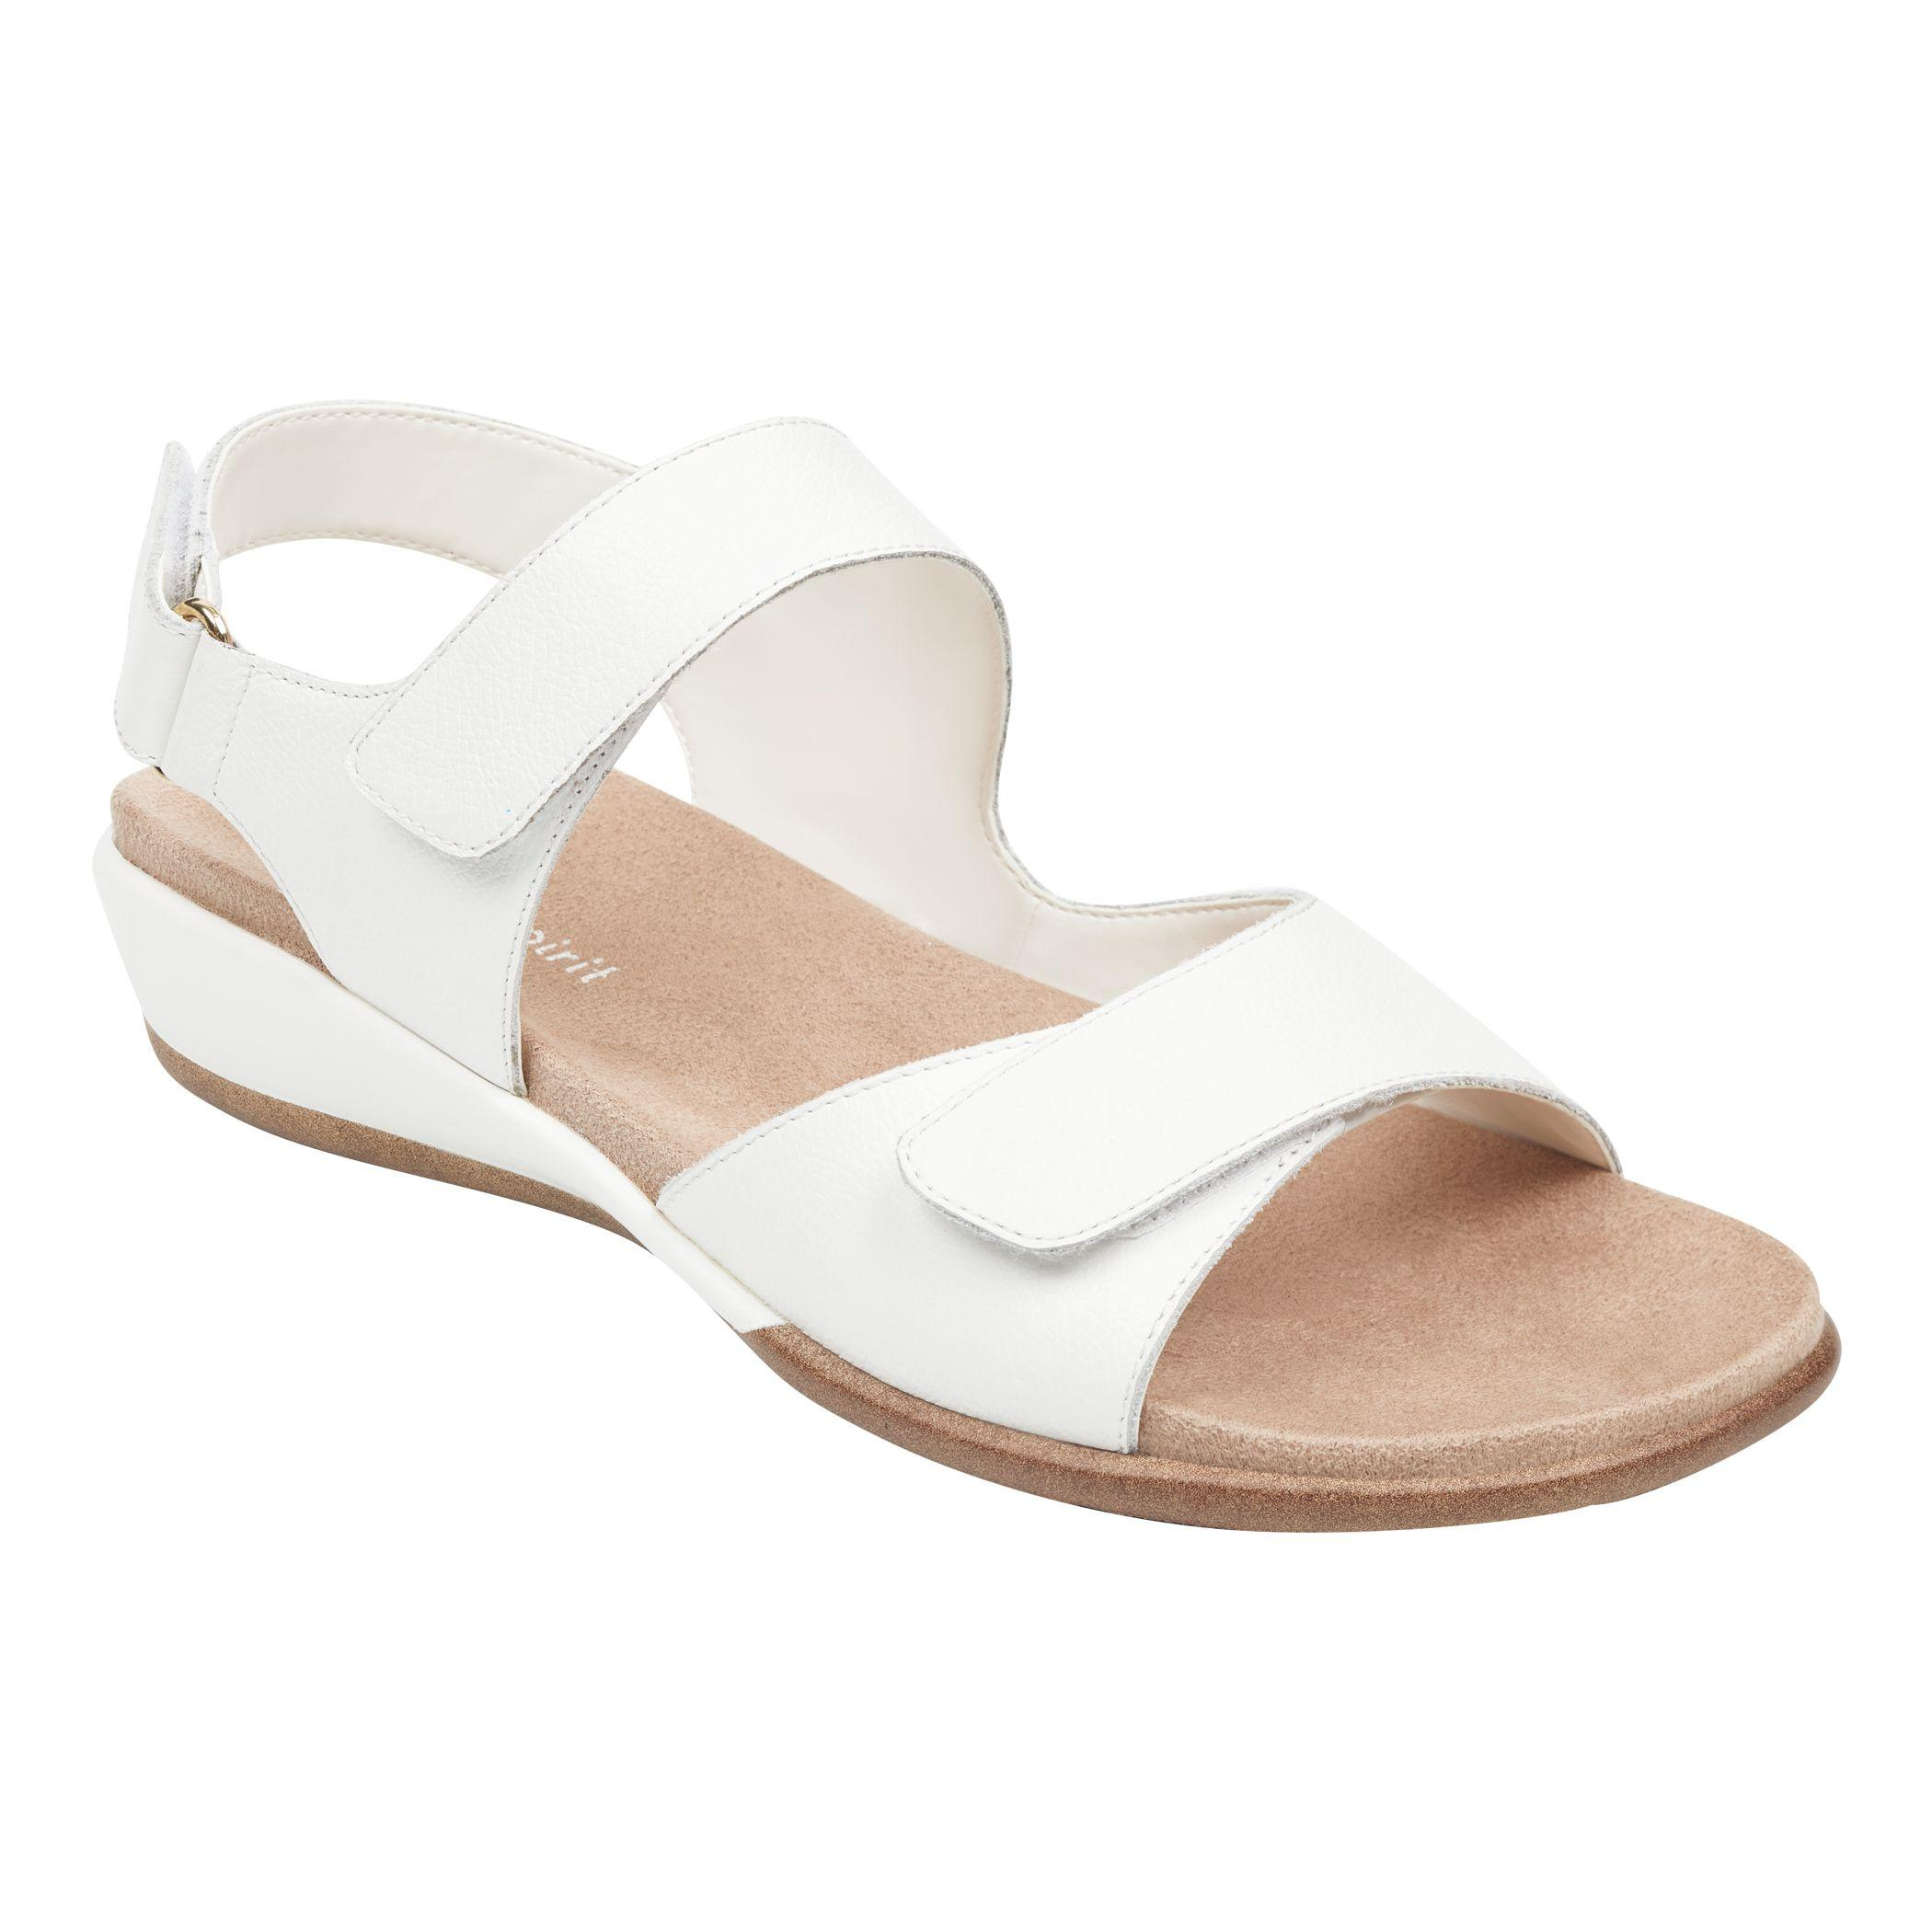 b577f47c Lyst - Easy Spirit Hartwell Flat Sandals - White Leather in White